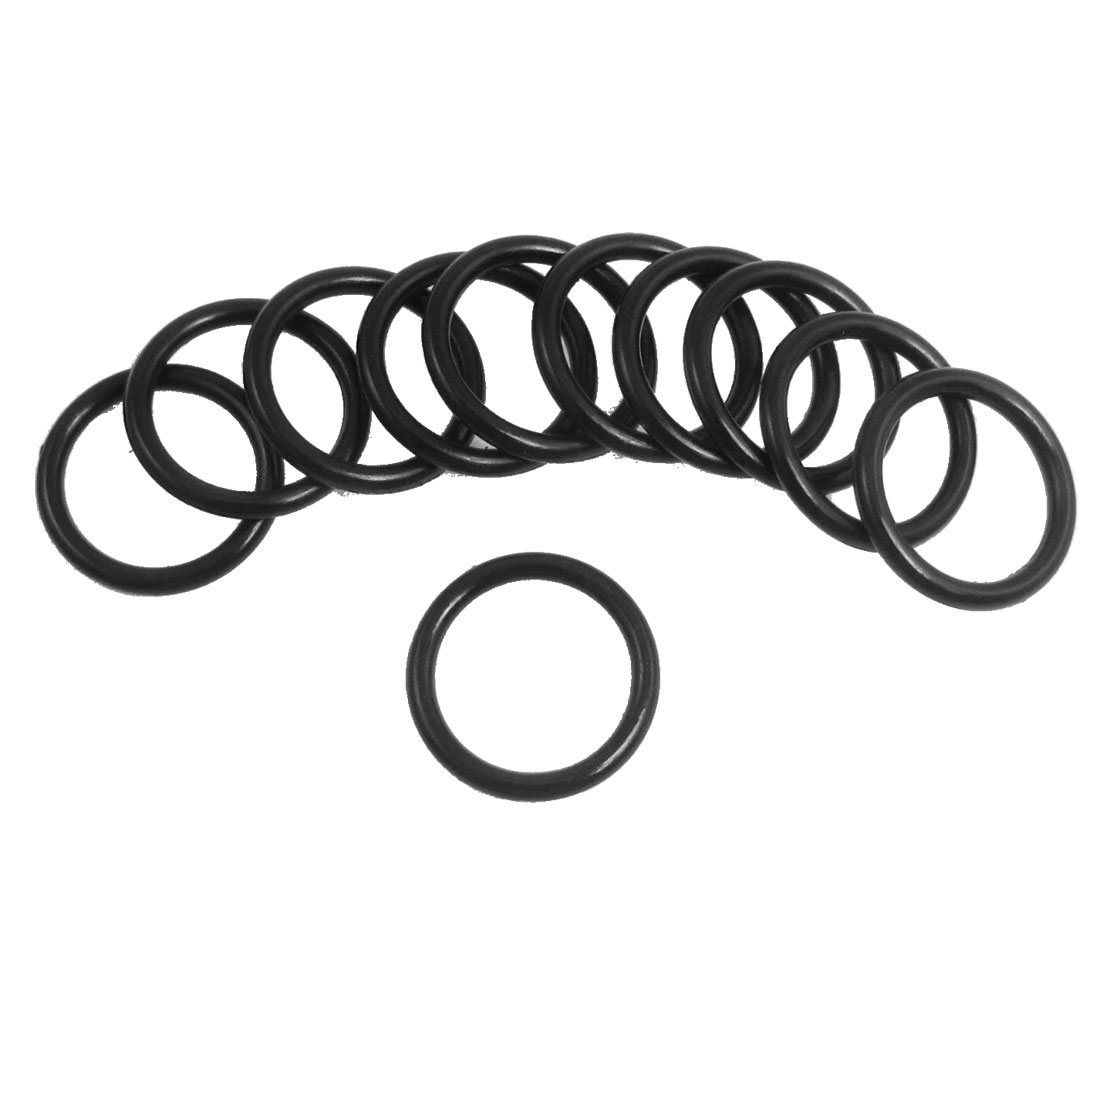 10 Pcs 18mm x 2.65mm Black Silicone O Rings Oil Seals Gaskets